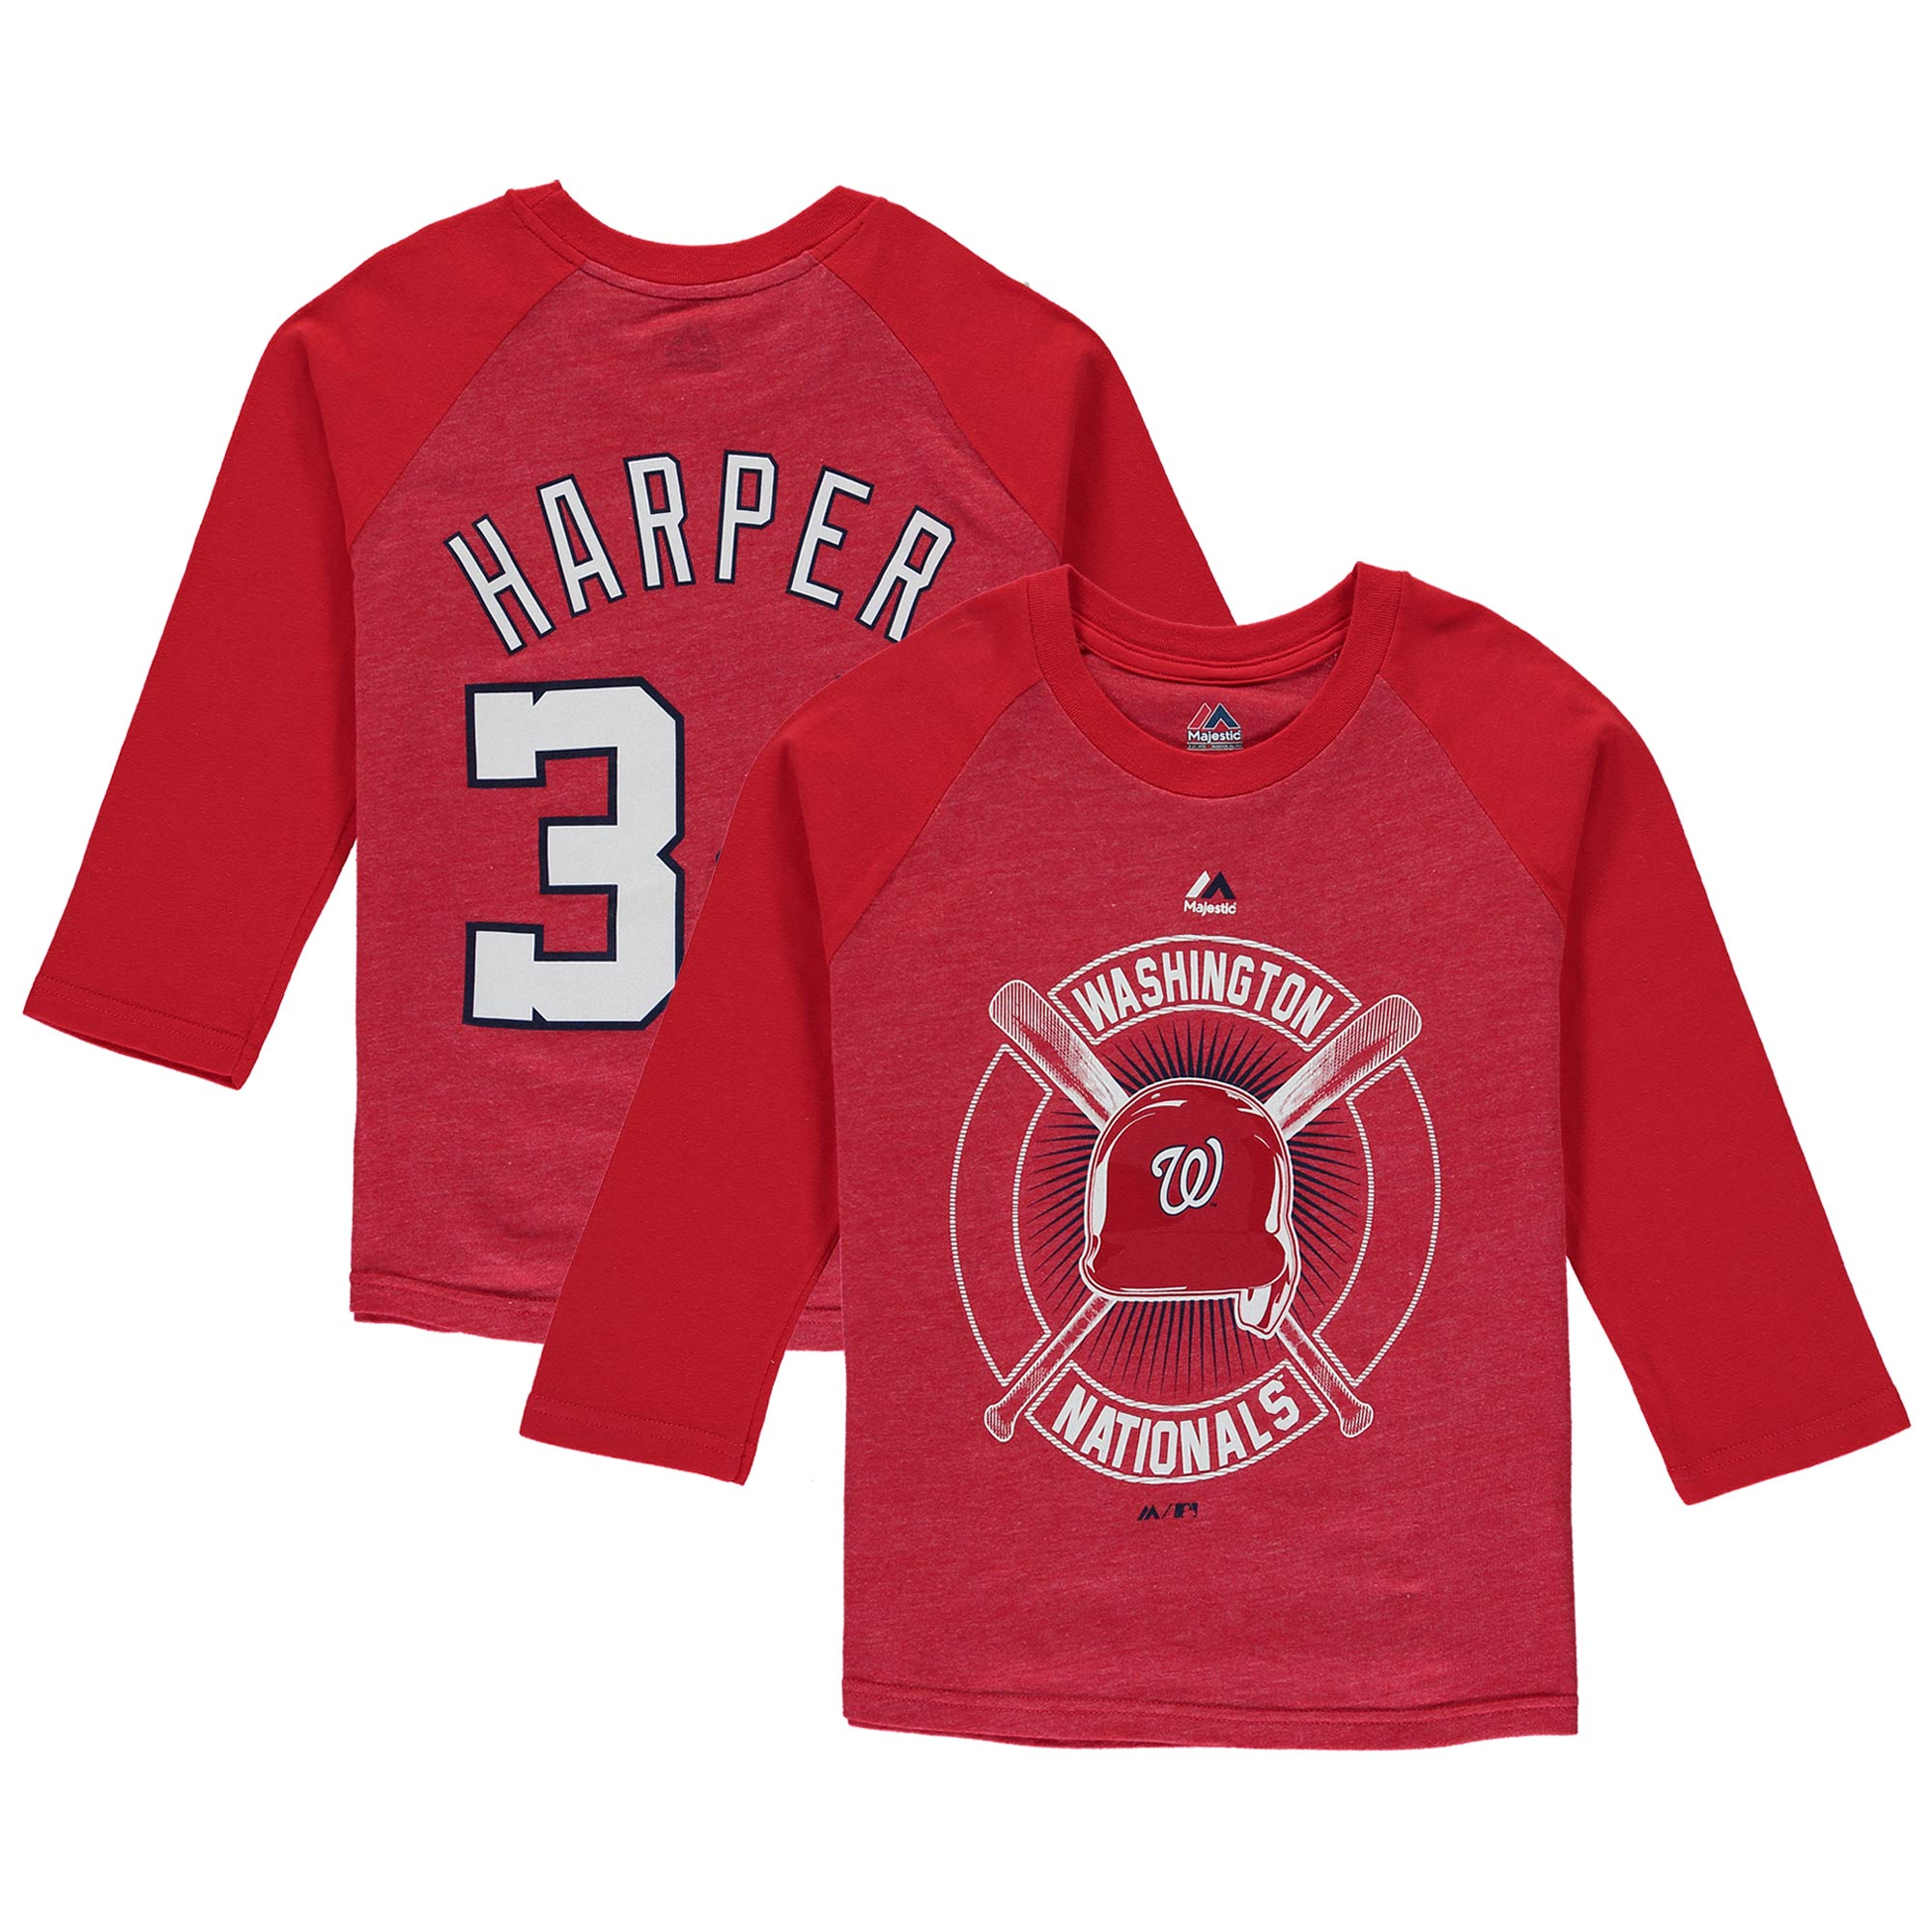 Bryce Harper Washington Nationals Youth Name & Number Tri-Blend 3/4-Sleeve Raglan T-Shirt - Red